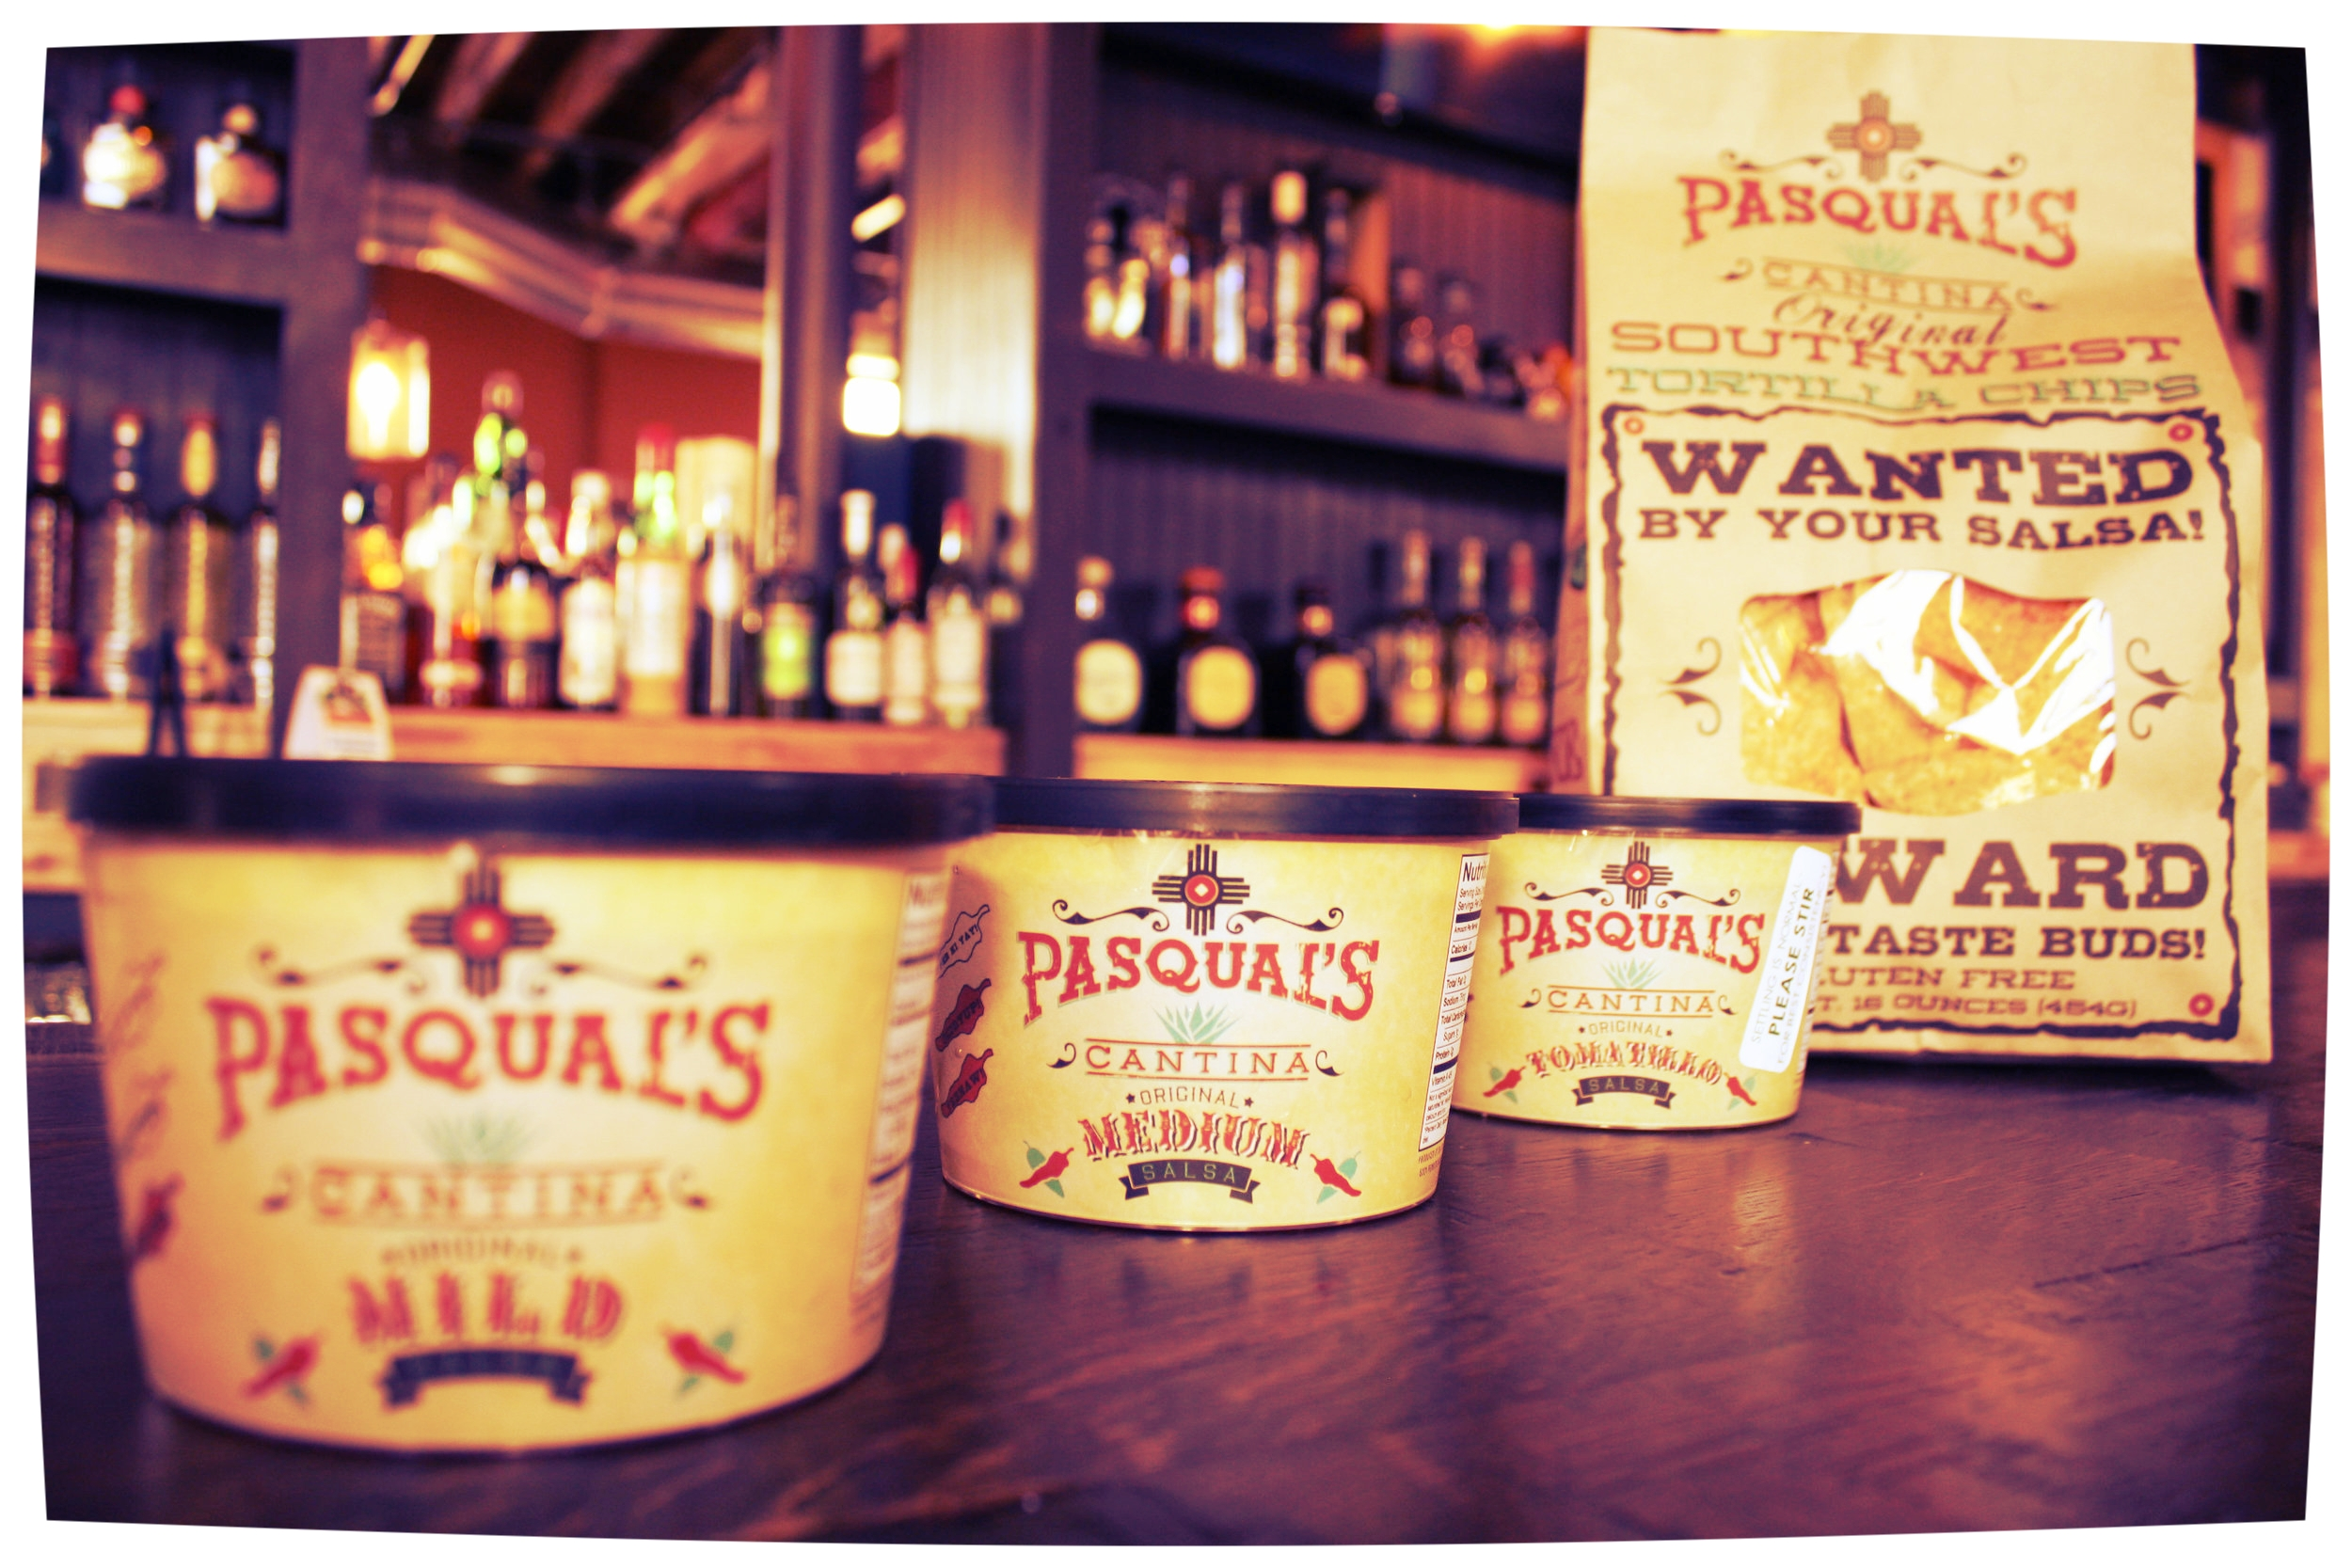 Pasqual's Product Family - Bar - edit.jpg